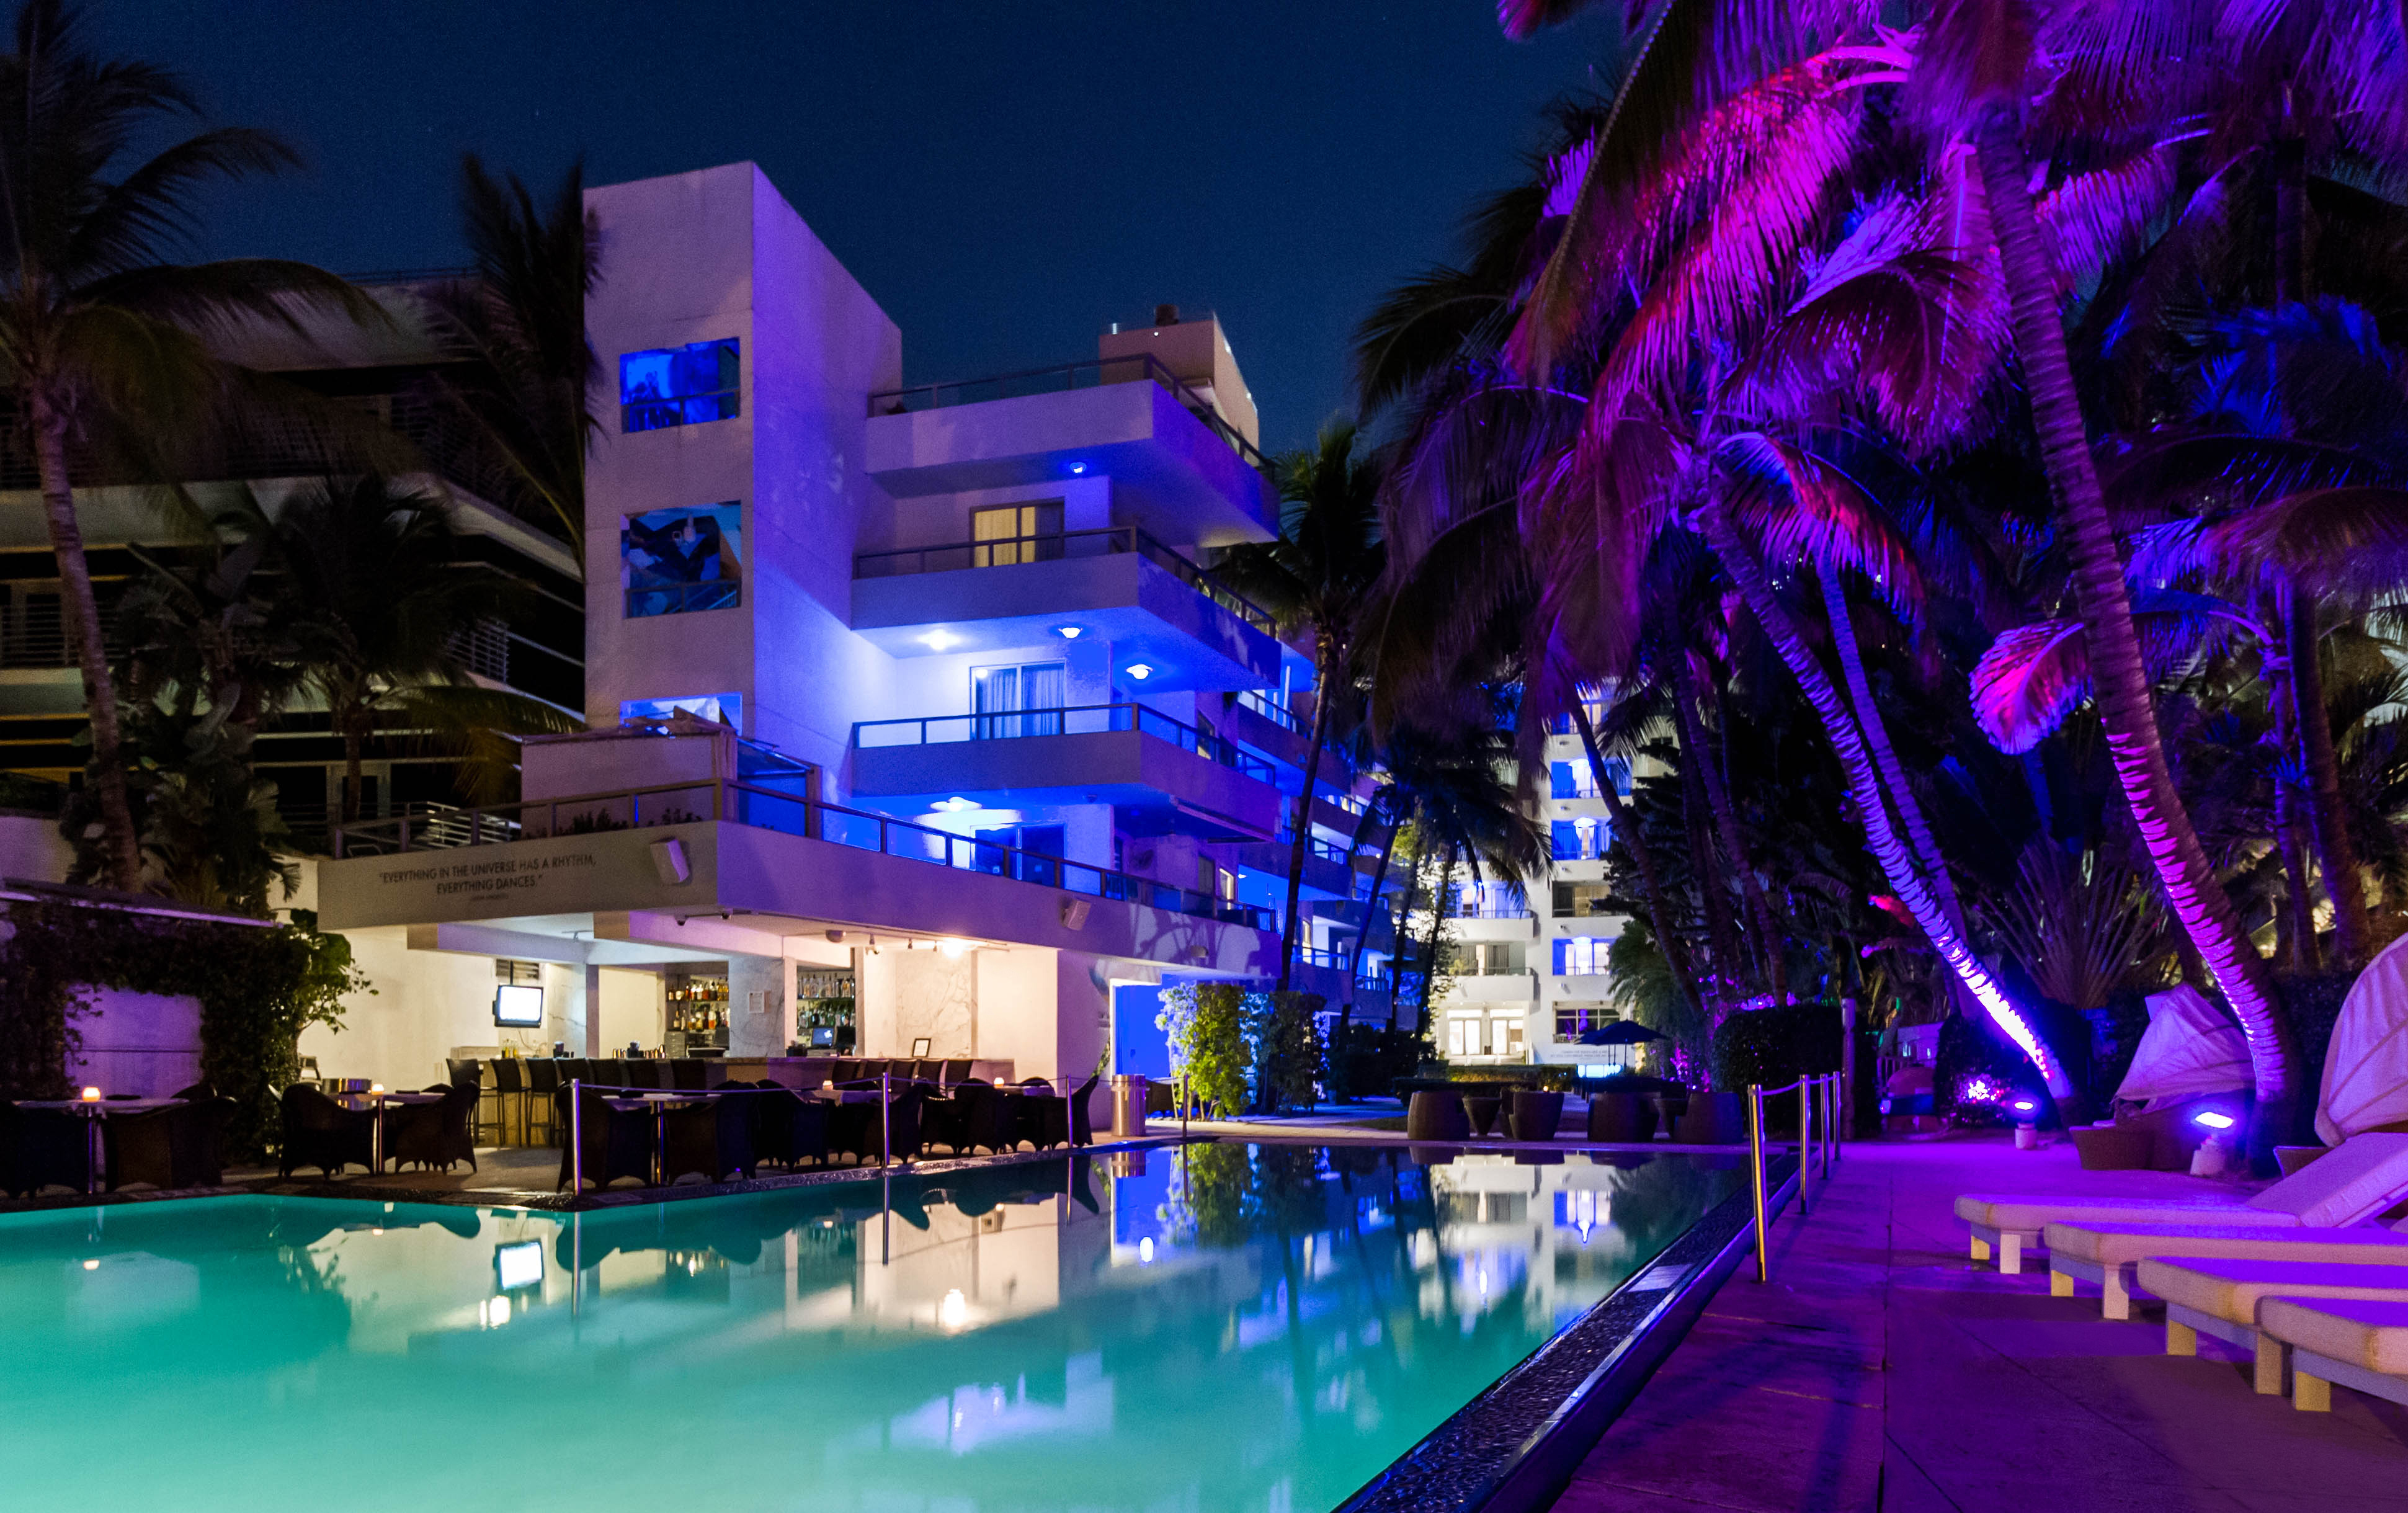 hotels garden kendall inn miami hotel express and us in miall suites gardens east holidayinnexpress by hoteldetail holiday cheap en ihg